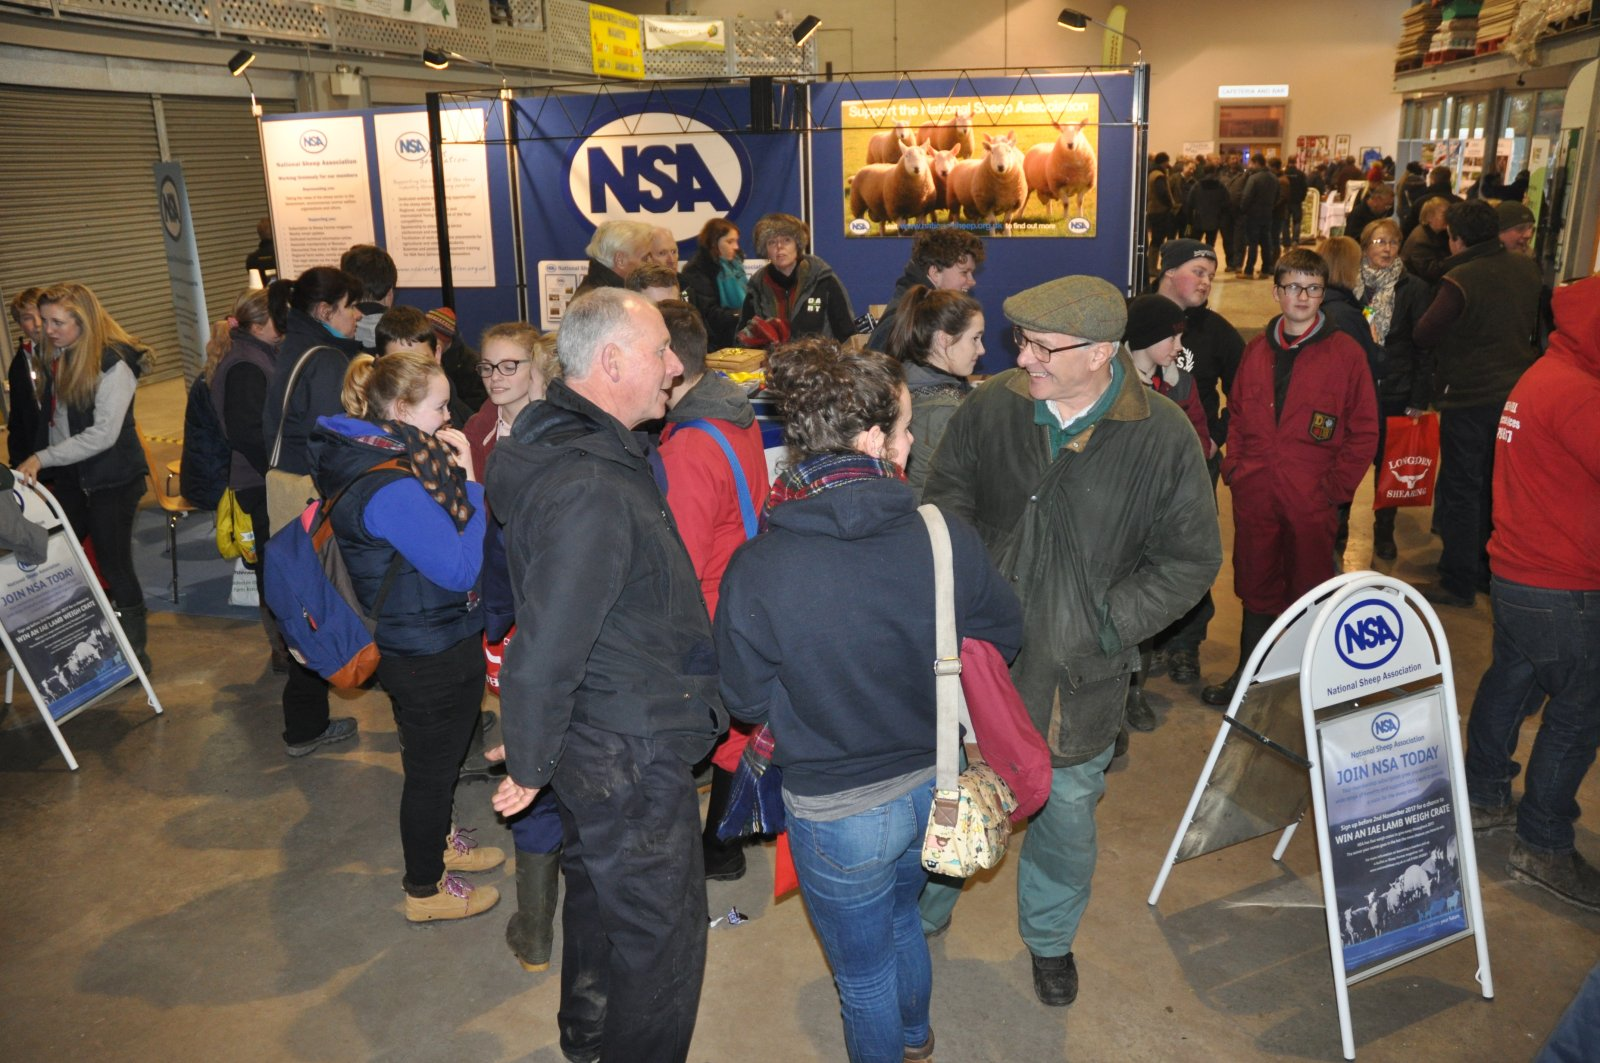 The NSA stand proved a hive of activity through the day